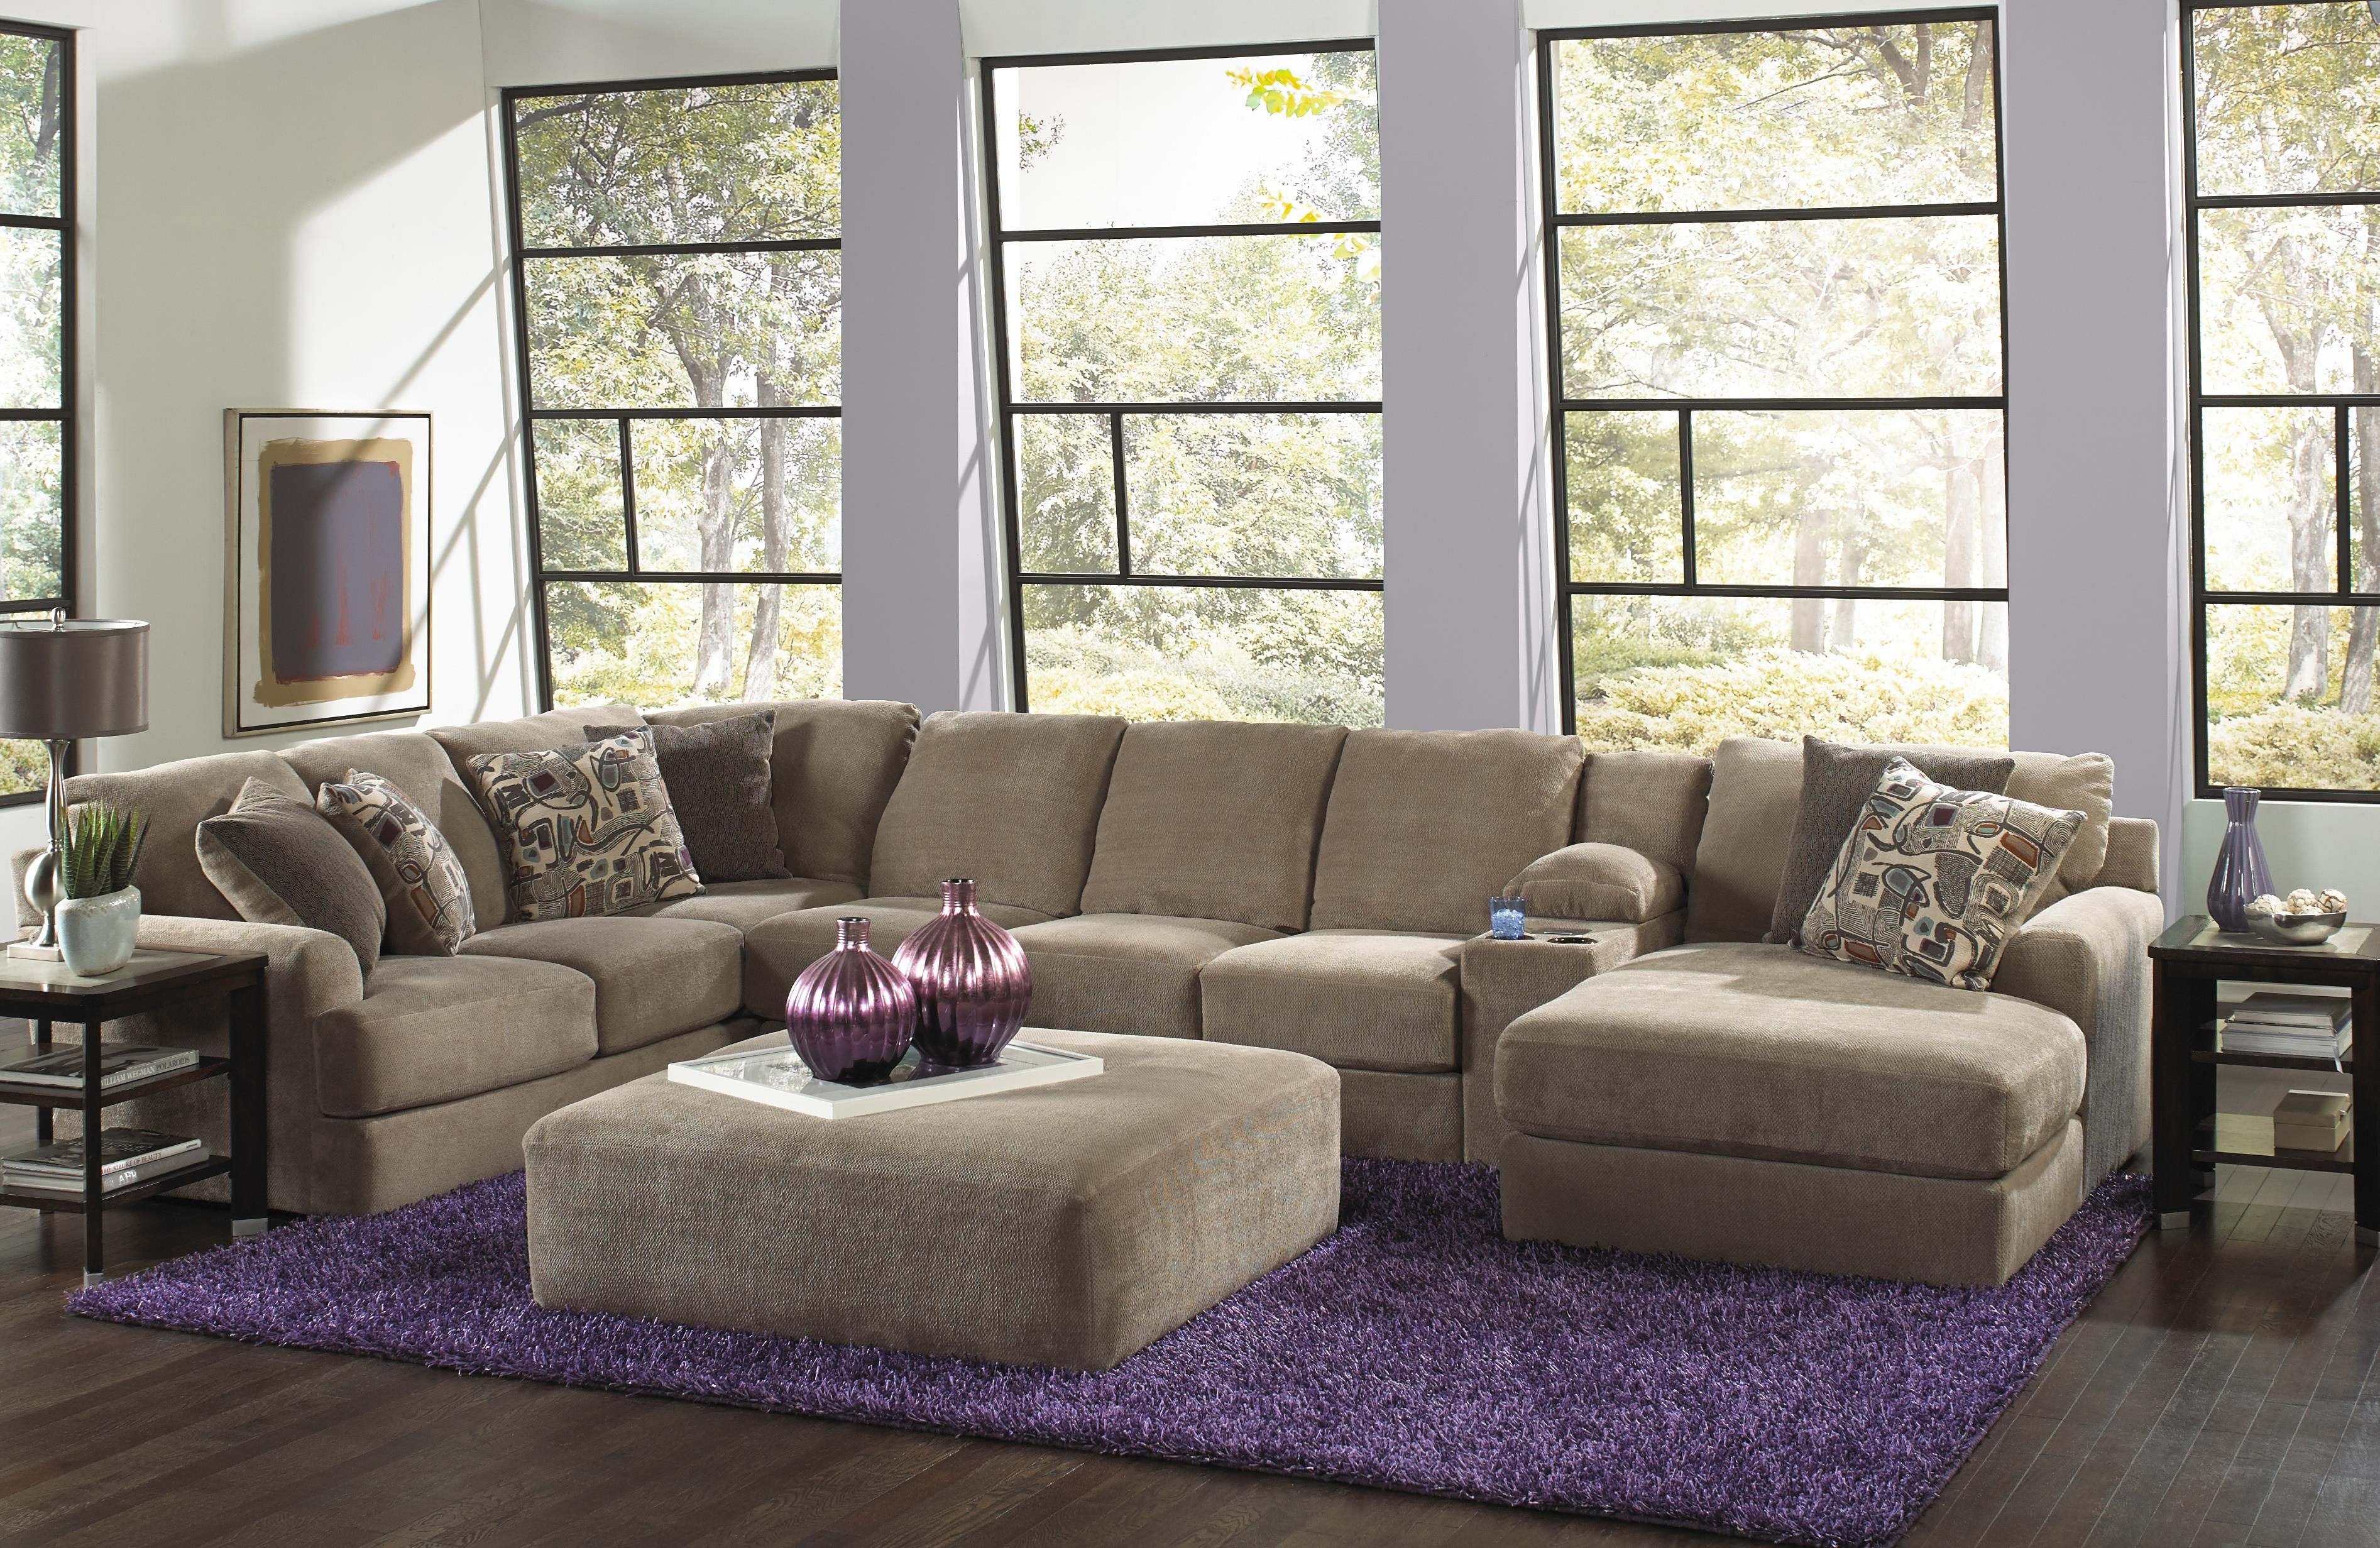 sectional furniture dual room floor living s with on harwood recliner and brown livings design for also sofas modern sofa board cream decorate re reclining corner